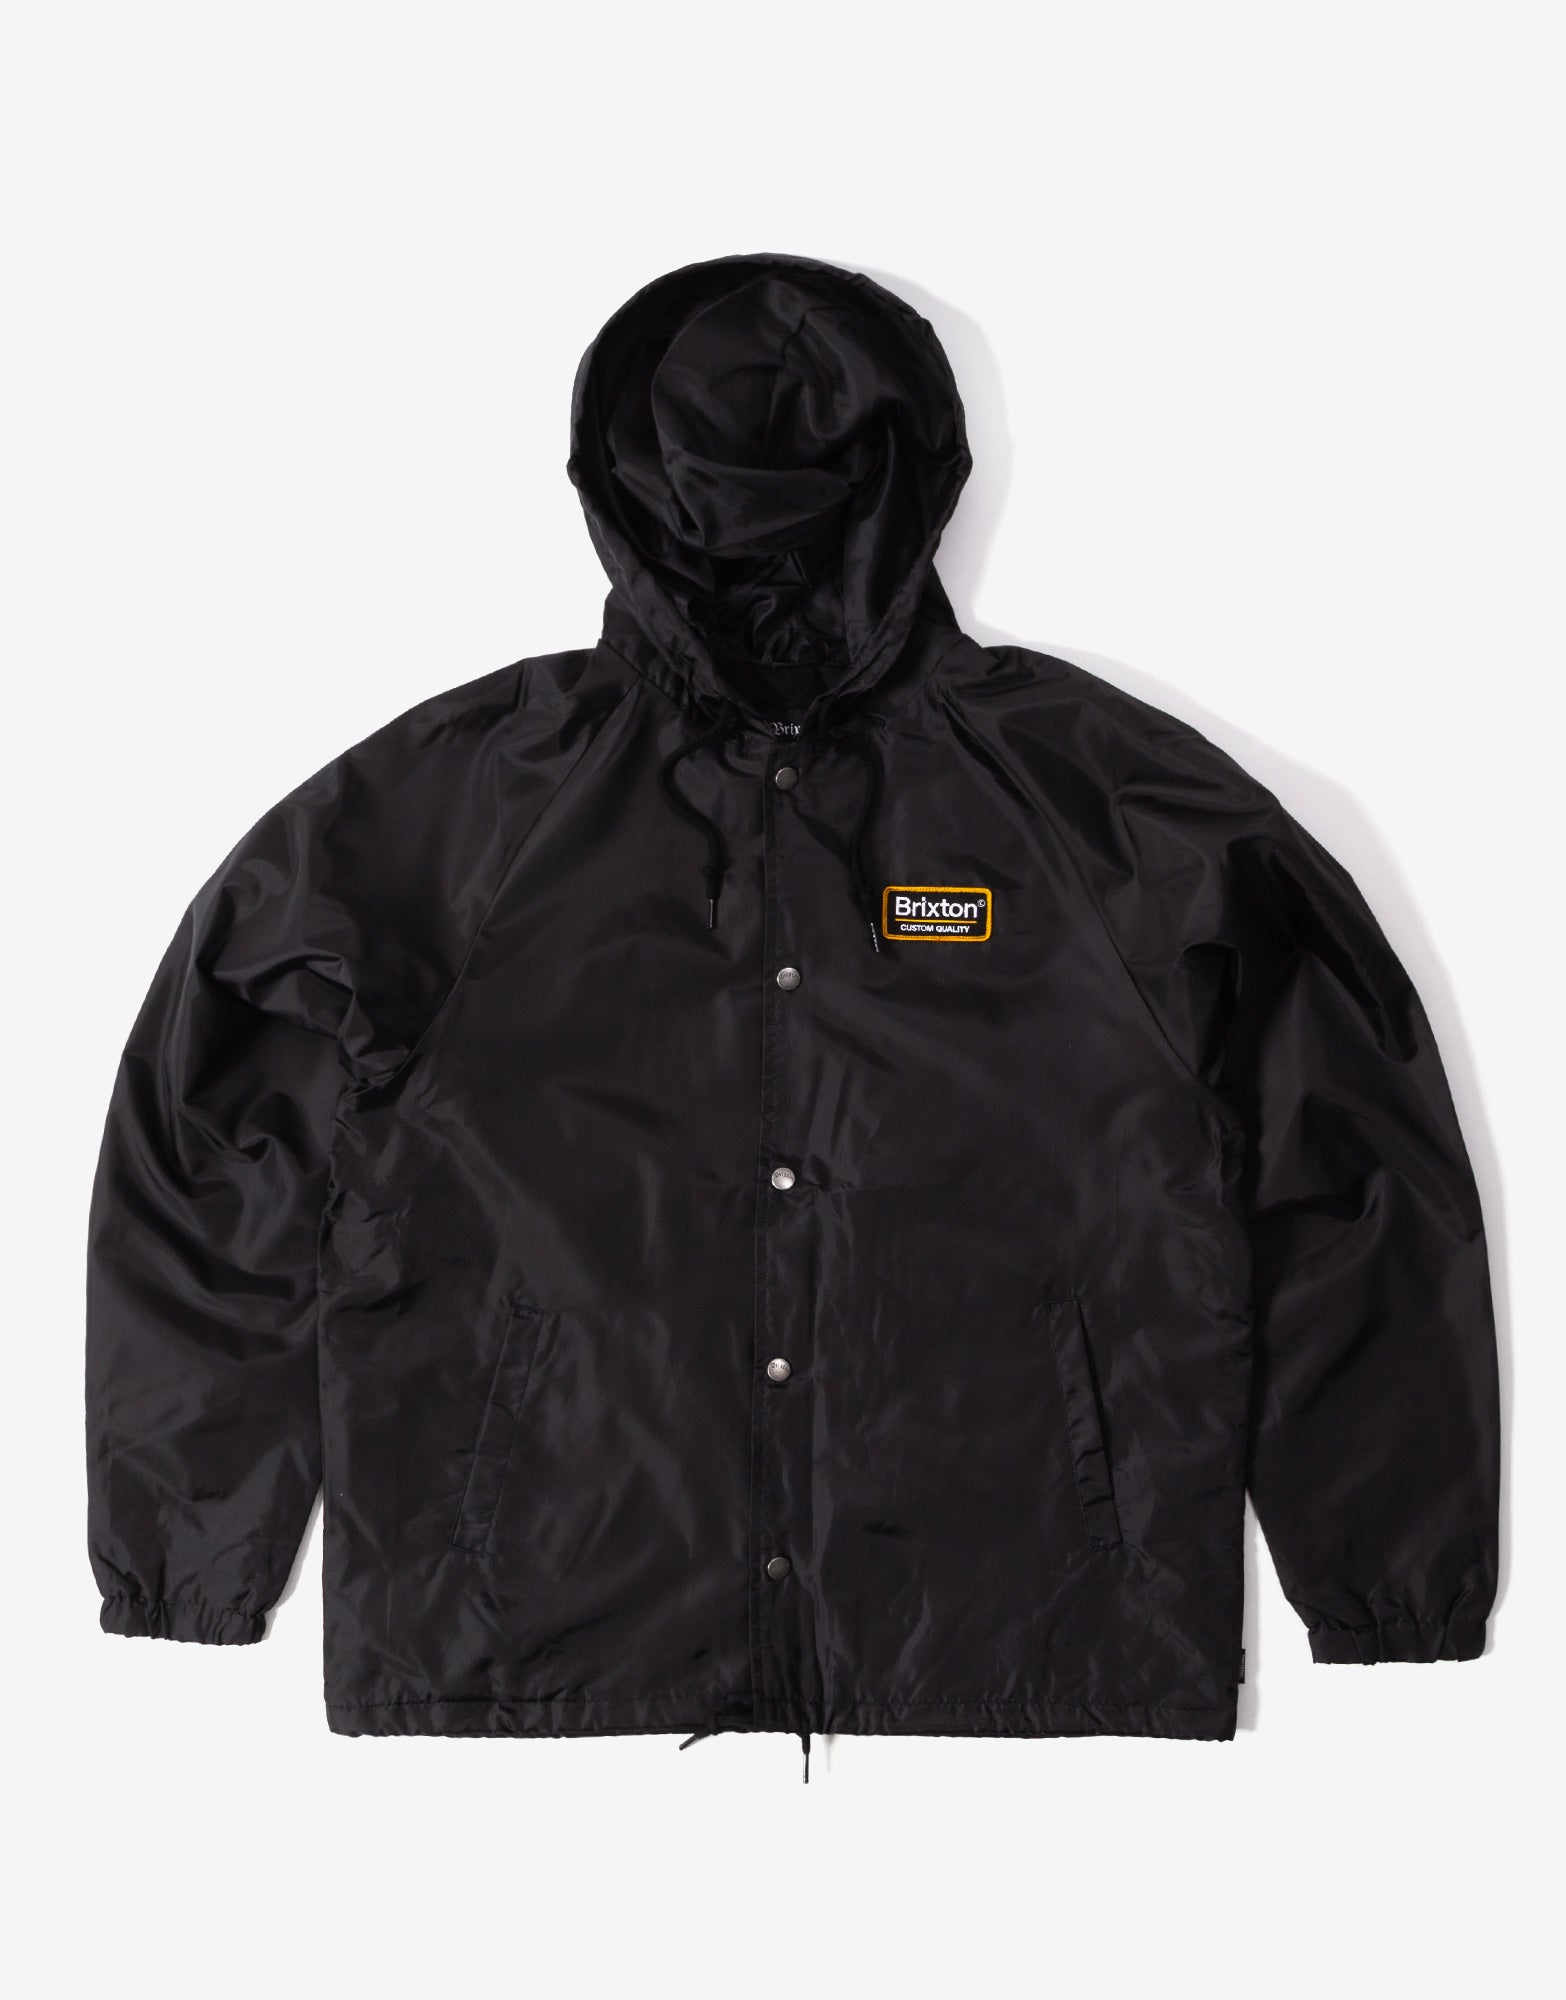 Brixton Palmer Hooded Jacket - Black/Gold